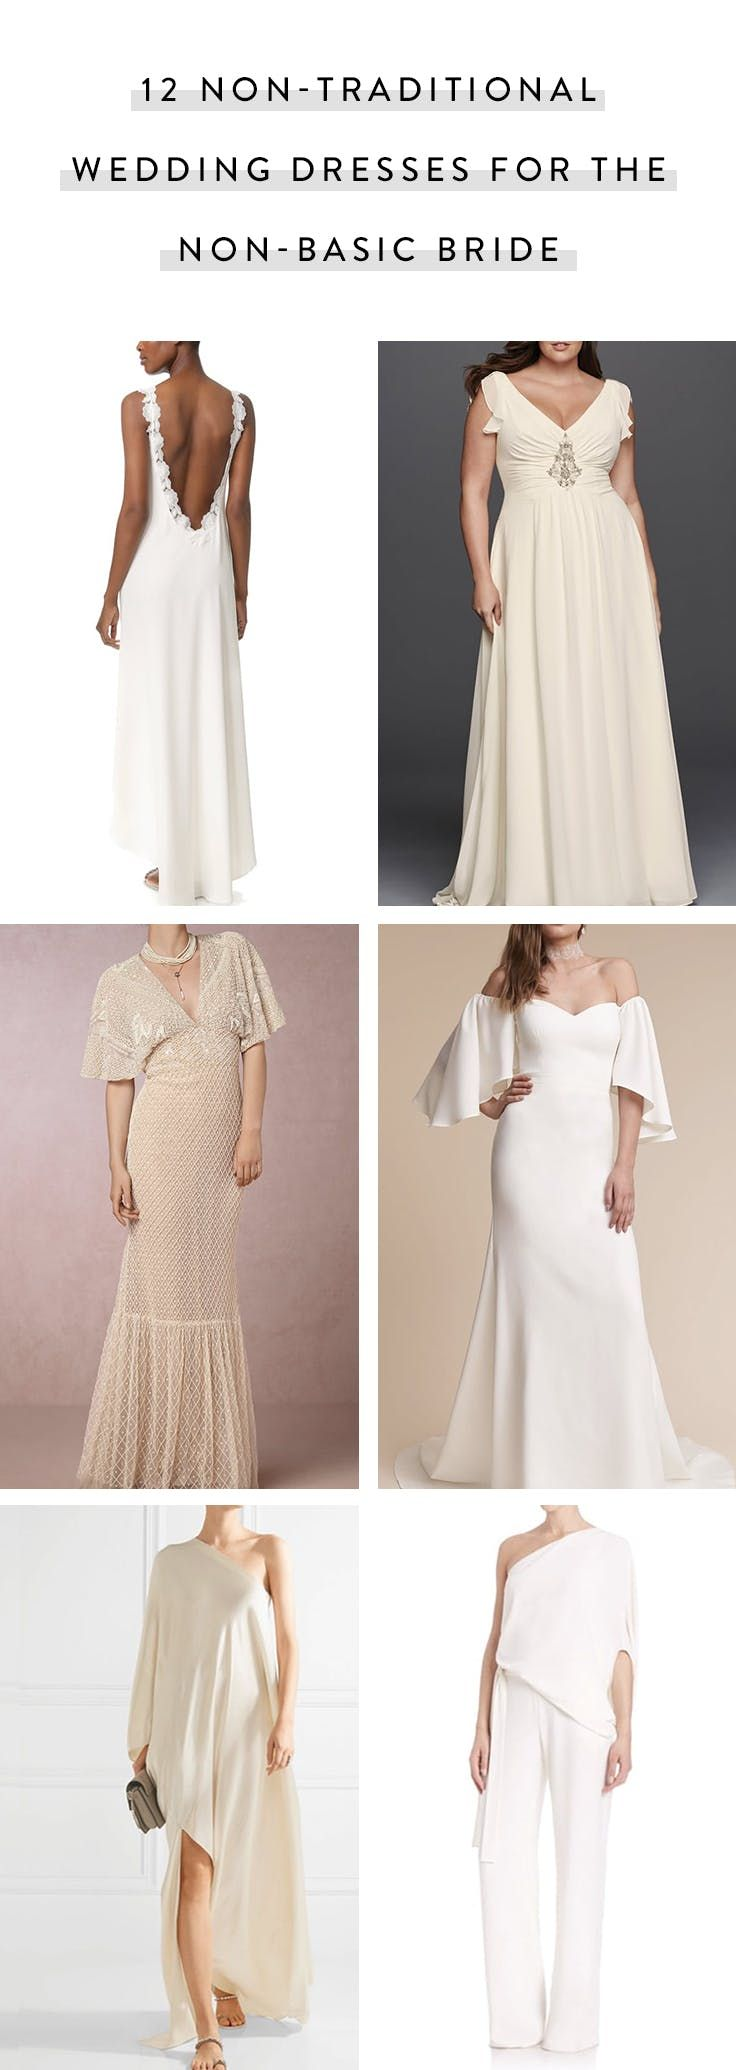 nontraditional wedding dresses for the nonbasic bride amazing